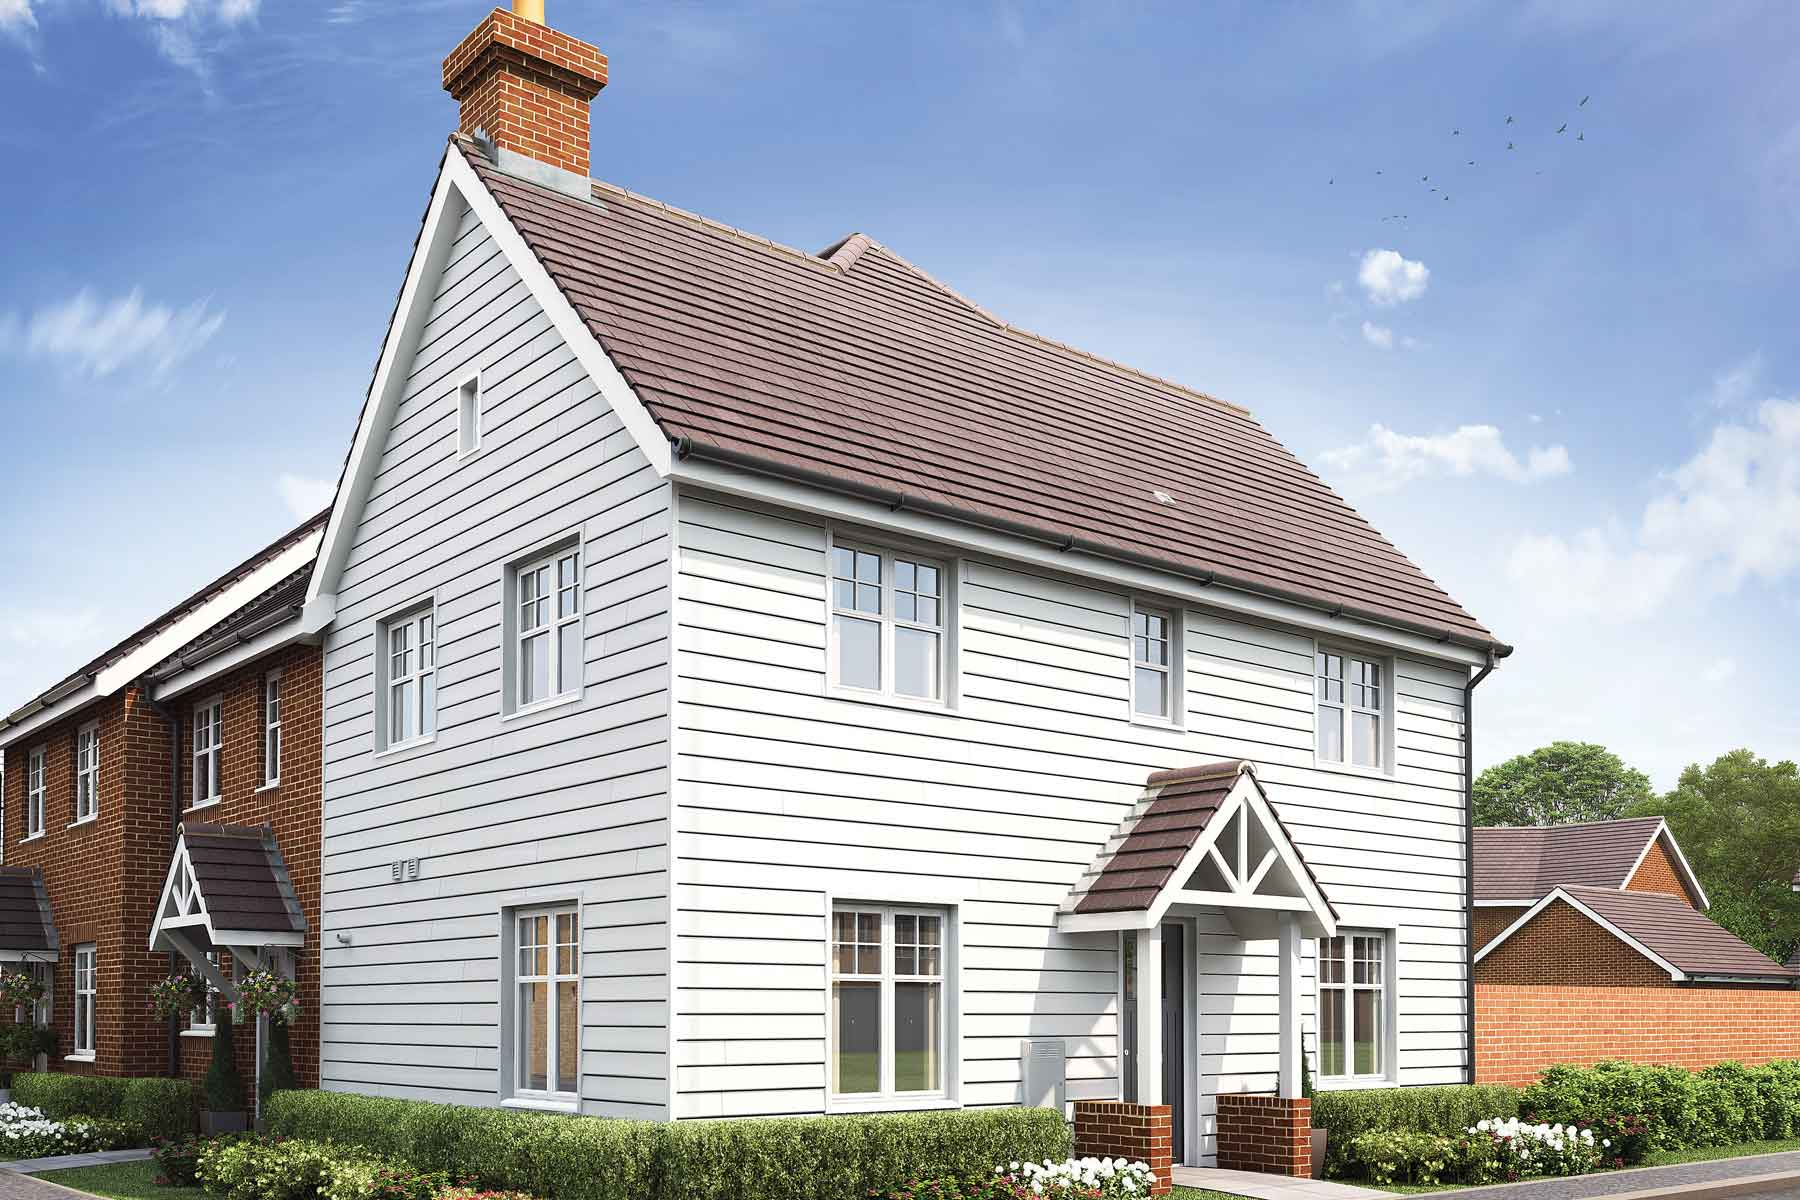 The Easedale three bedroom home